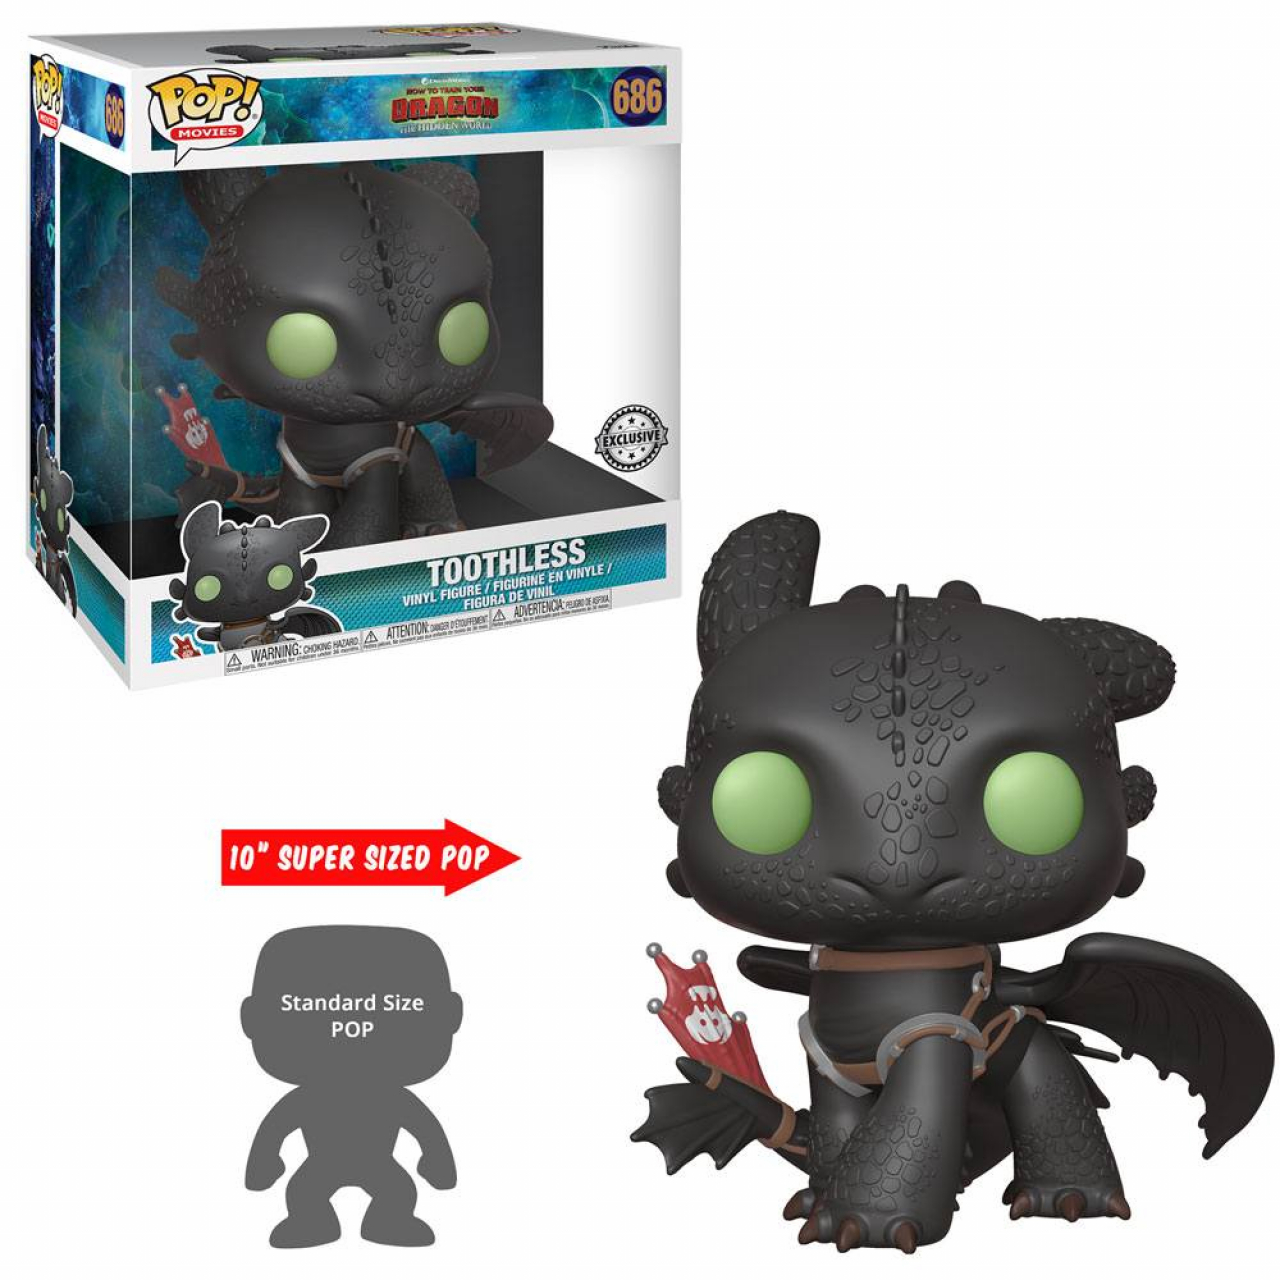 How to Train Your Dragon 3 Super Sized POP! Vinyl Figure Toothless 25 cm